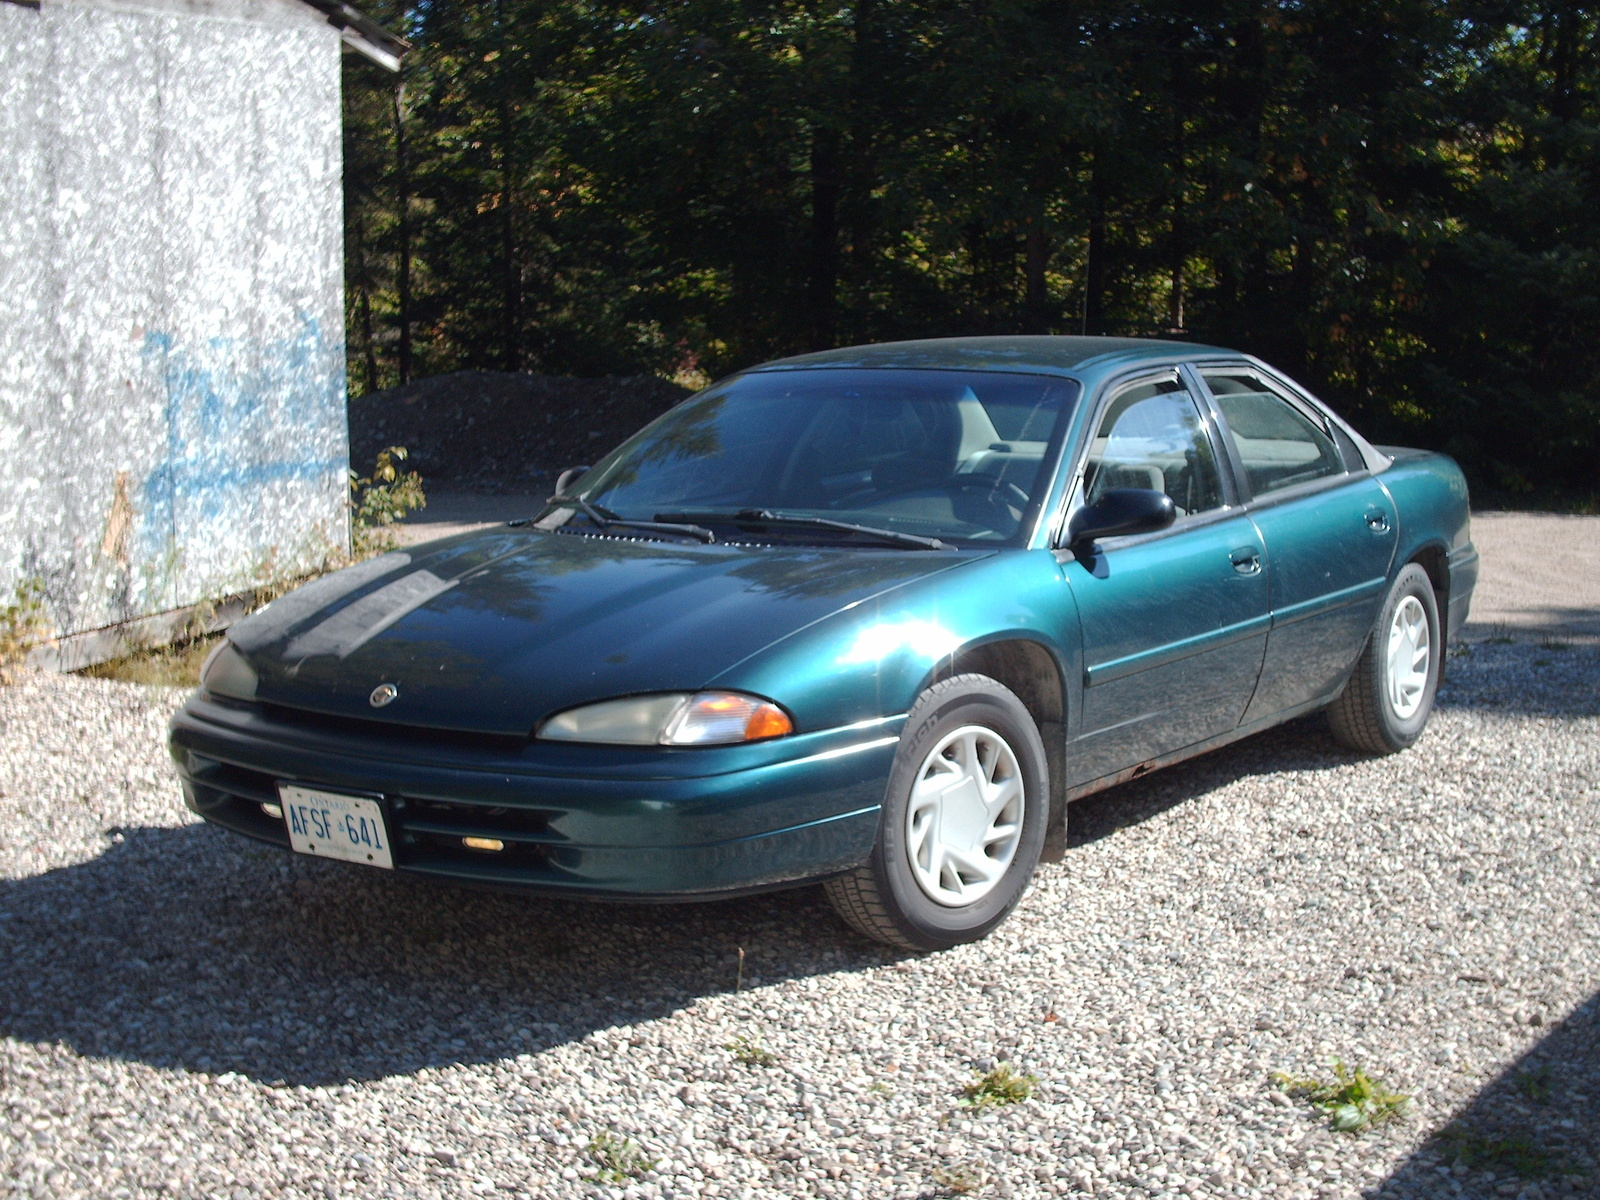 1993 dodge intrepid: